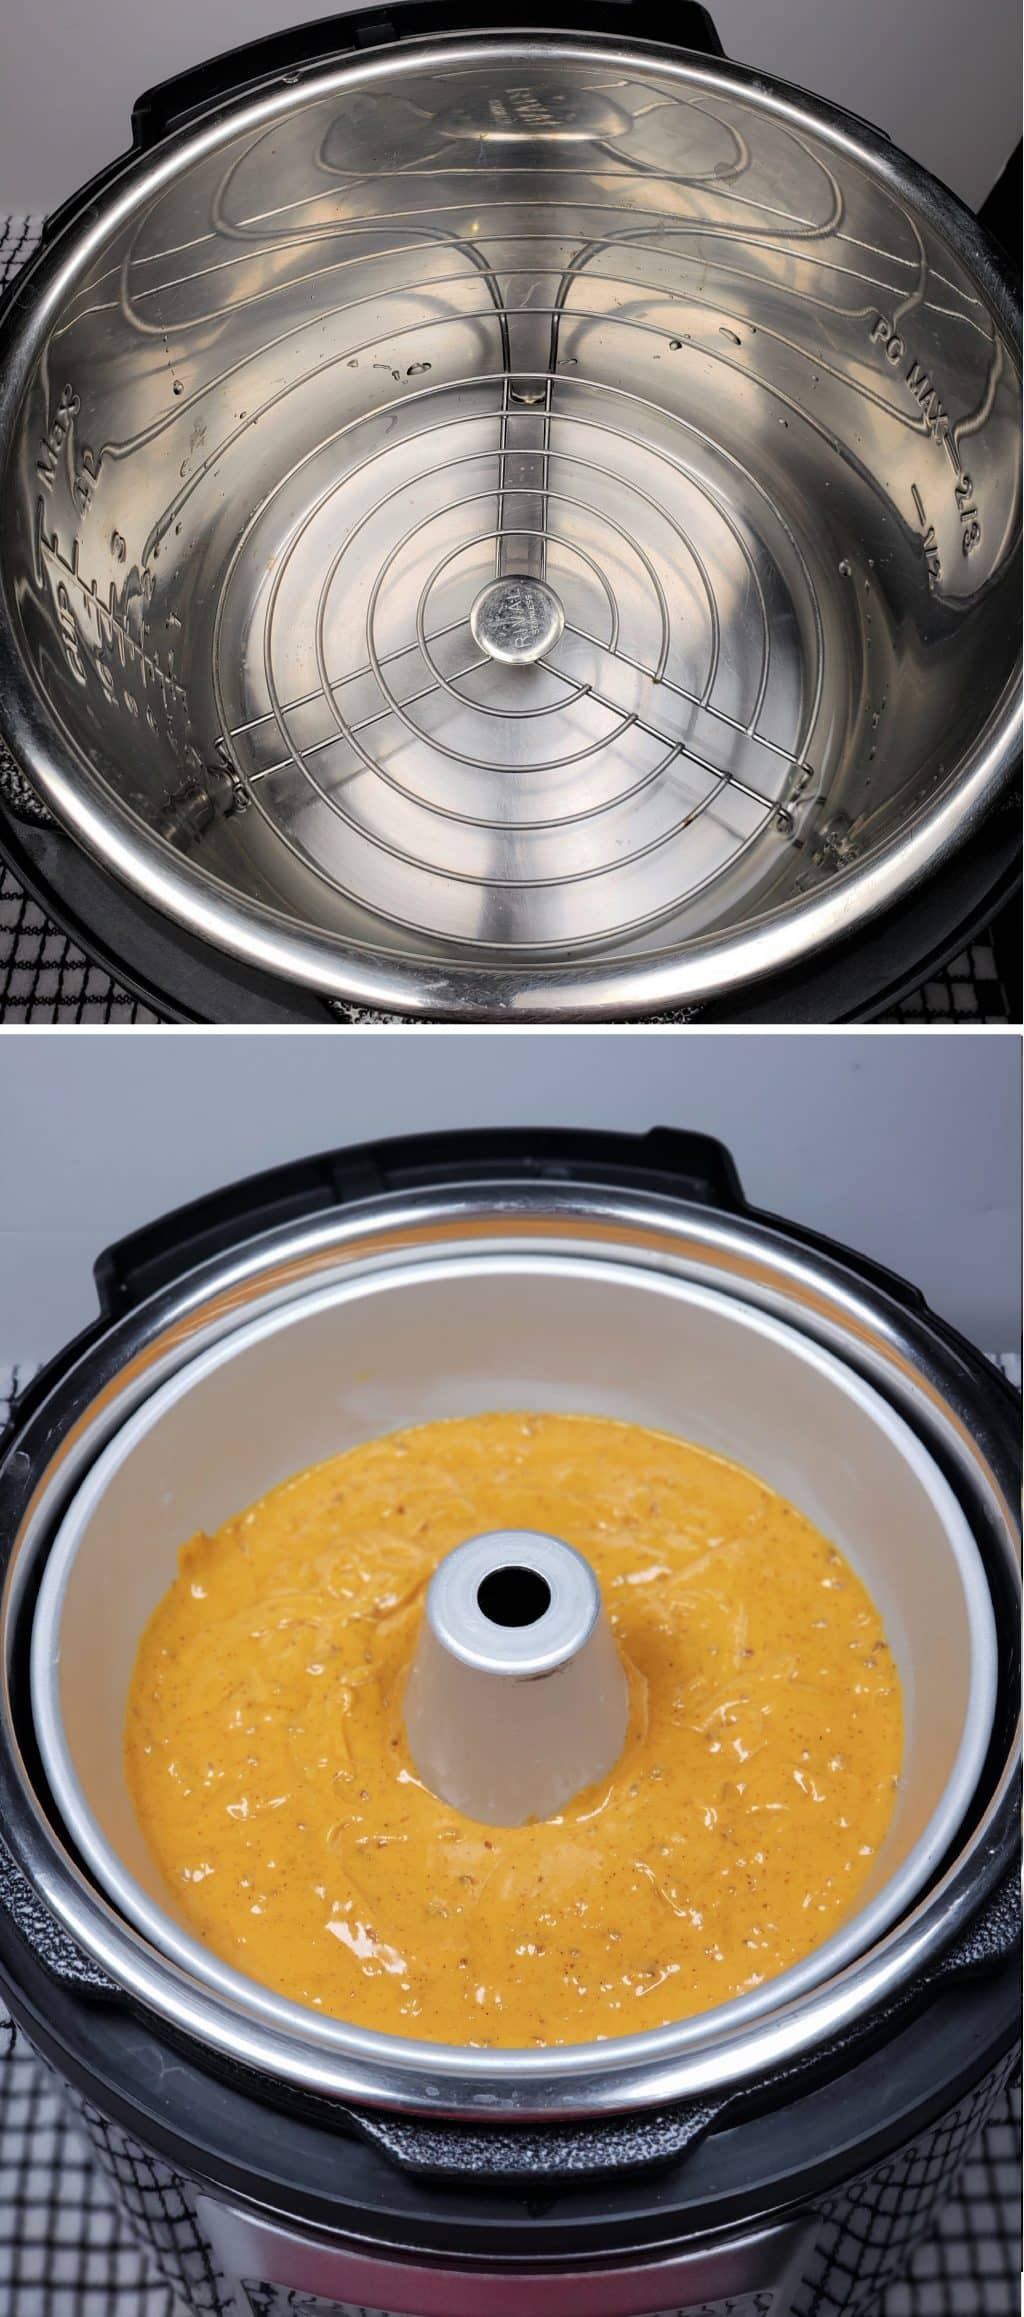 Water, Trivet and Cake Pan in Cooking Pot